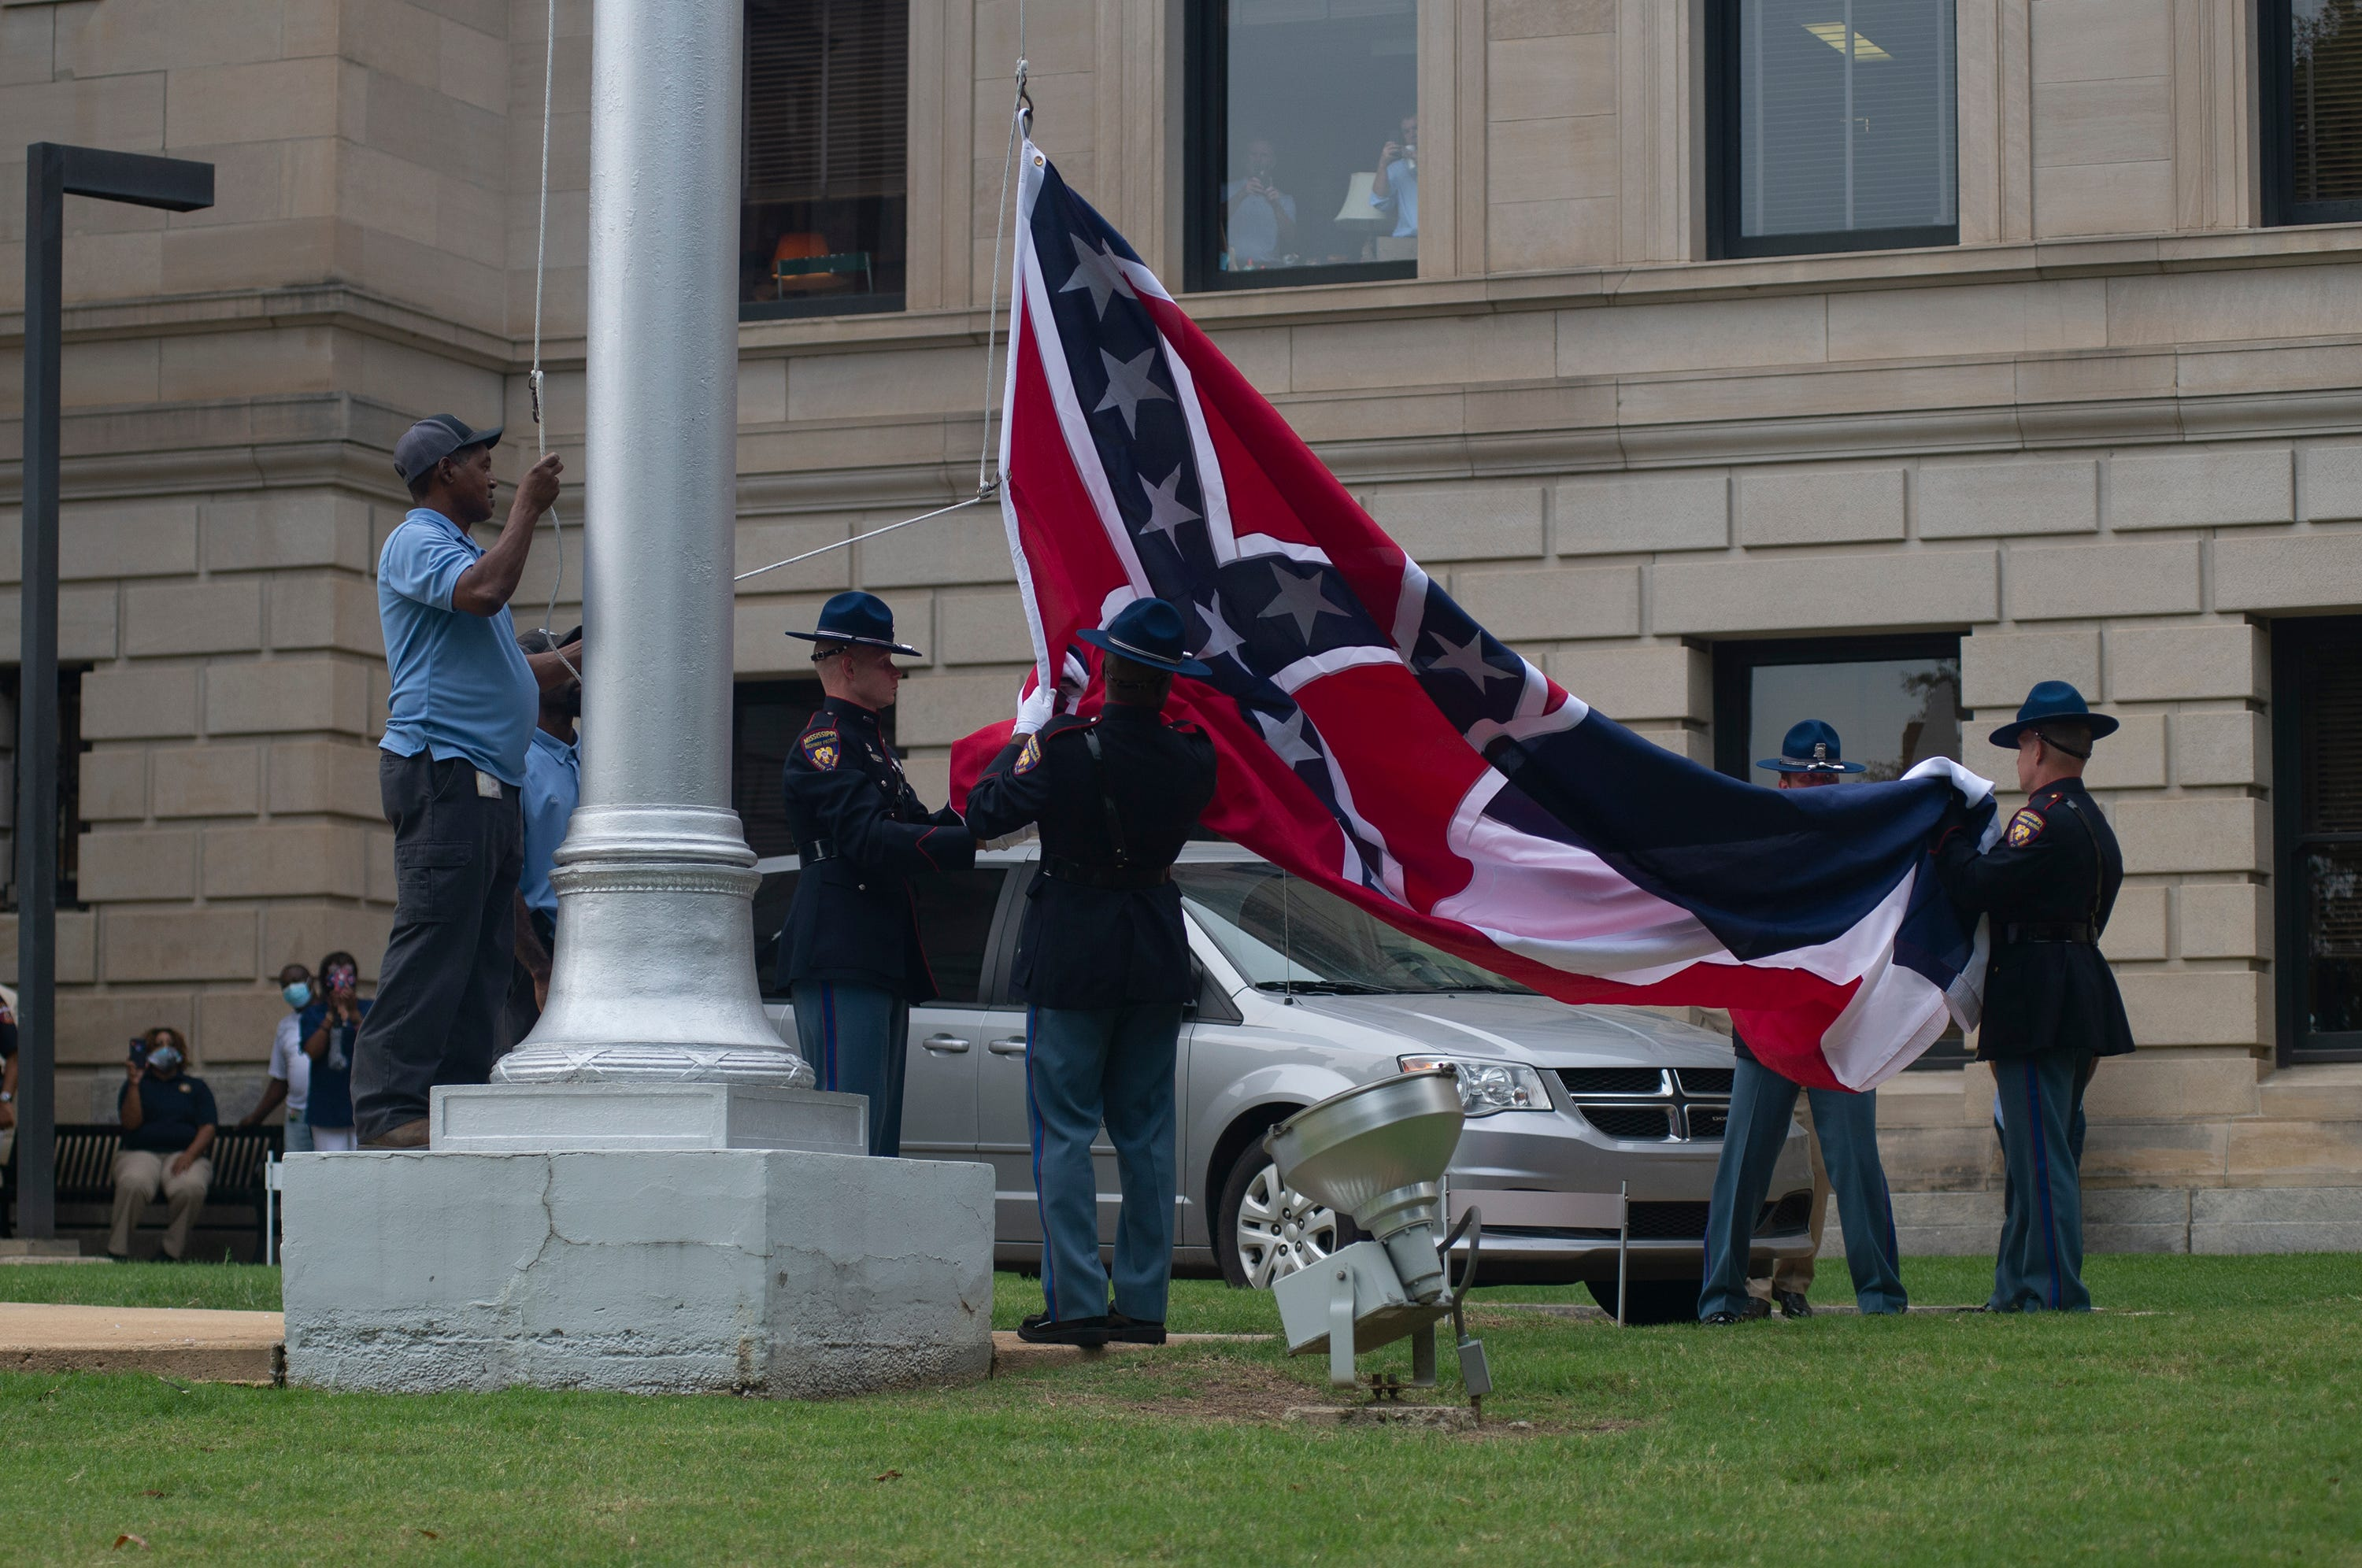 The Mississippi state flag is lowered for the last time and folded by the Mississippi Highway Patrol Honor Guard during a flag retirement ceremony at the state Capitol in Jackson on July 1, 2020. After the ceremony, the flag was presented to the Mississippi Museum of History.